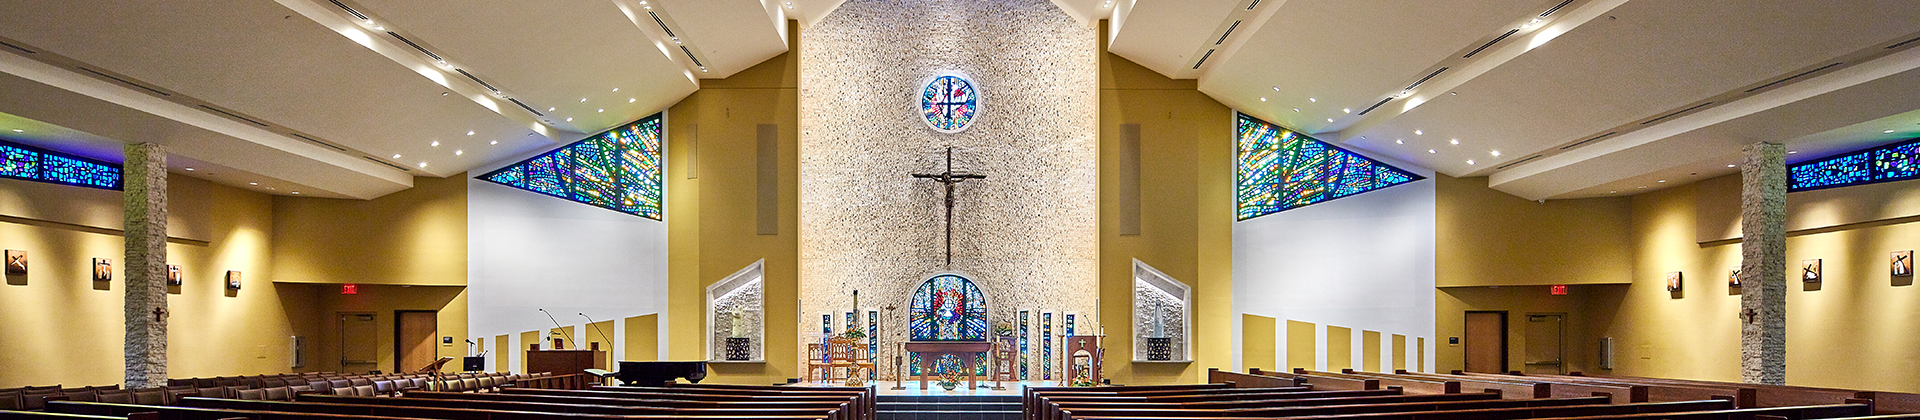 Saint Andrew Kim Catholic Church - Irving, TX